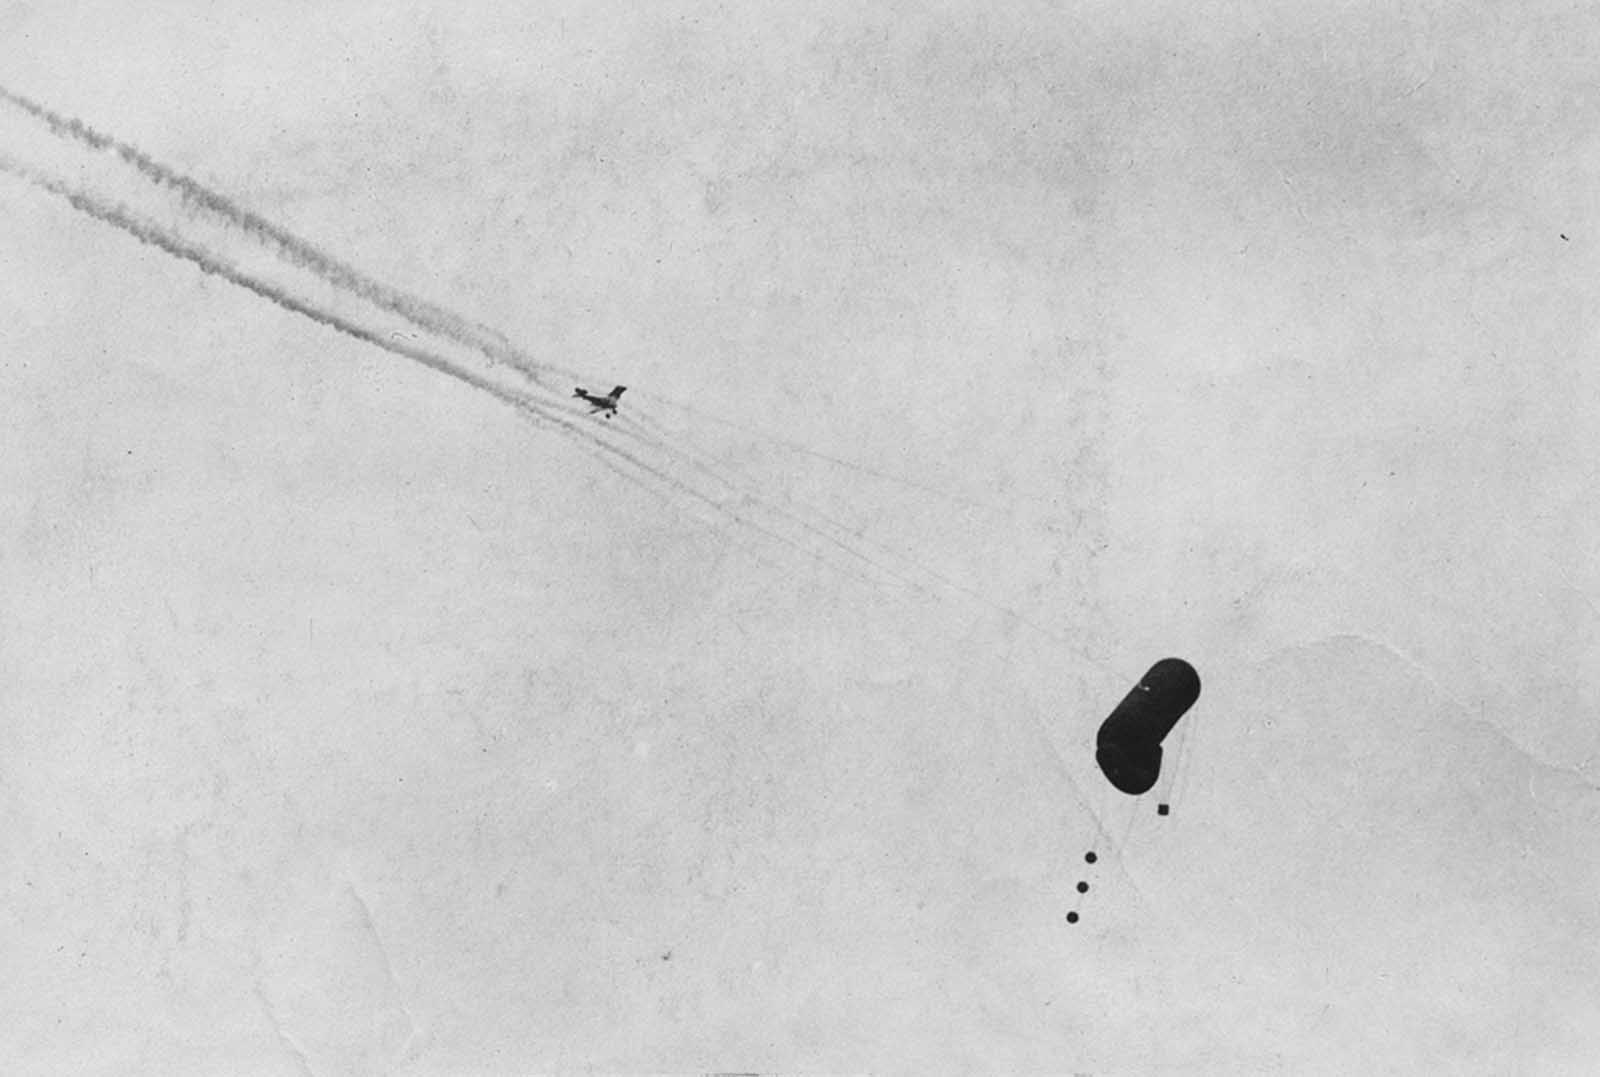 A German balloon being shot down.